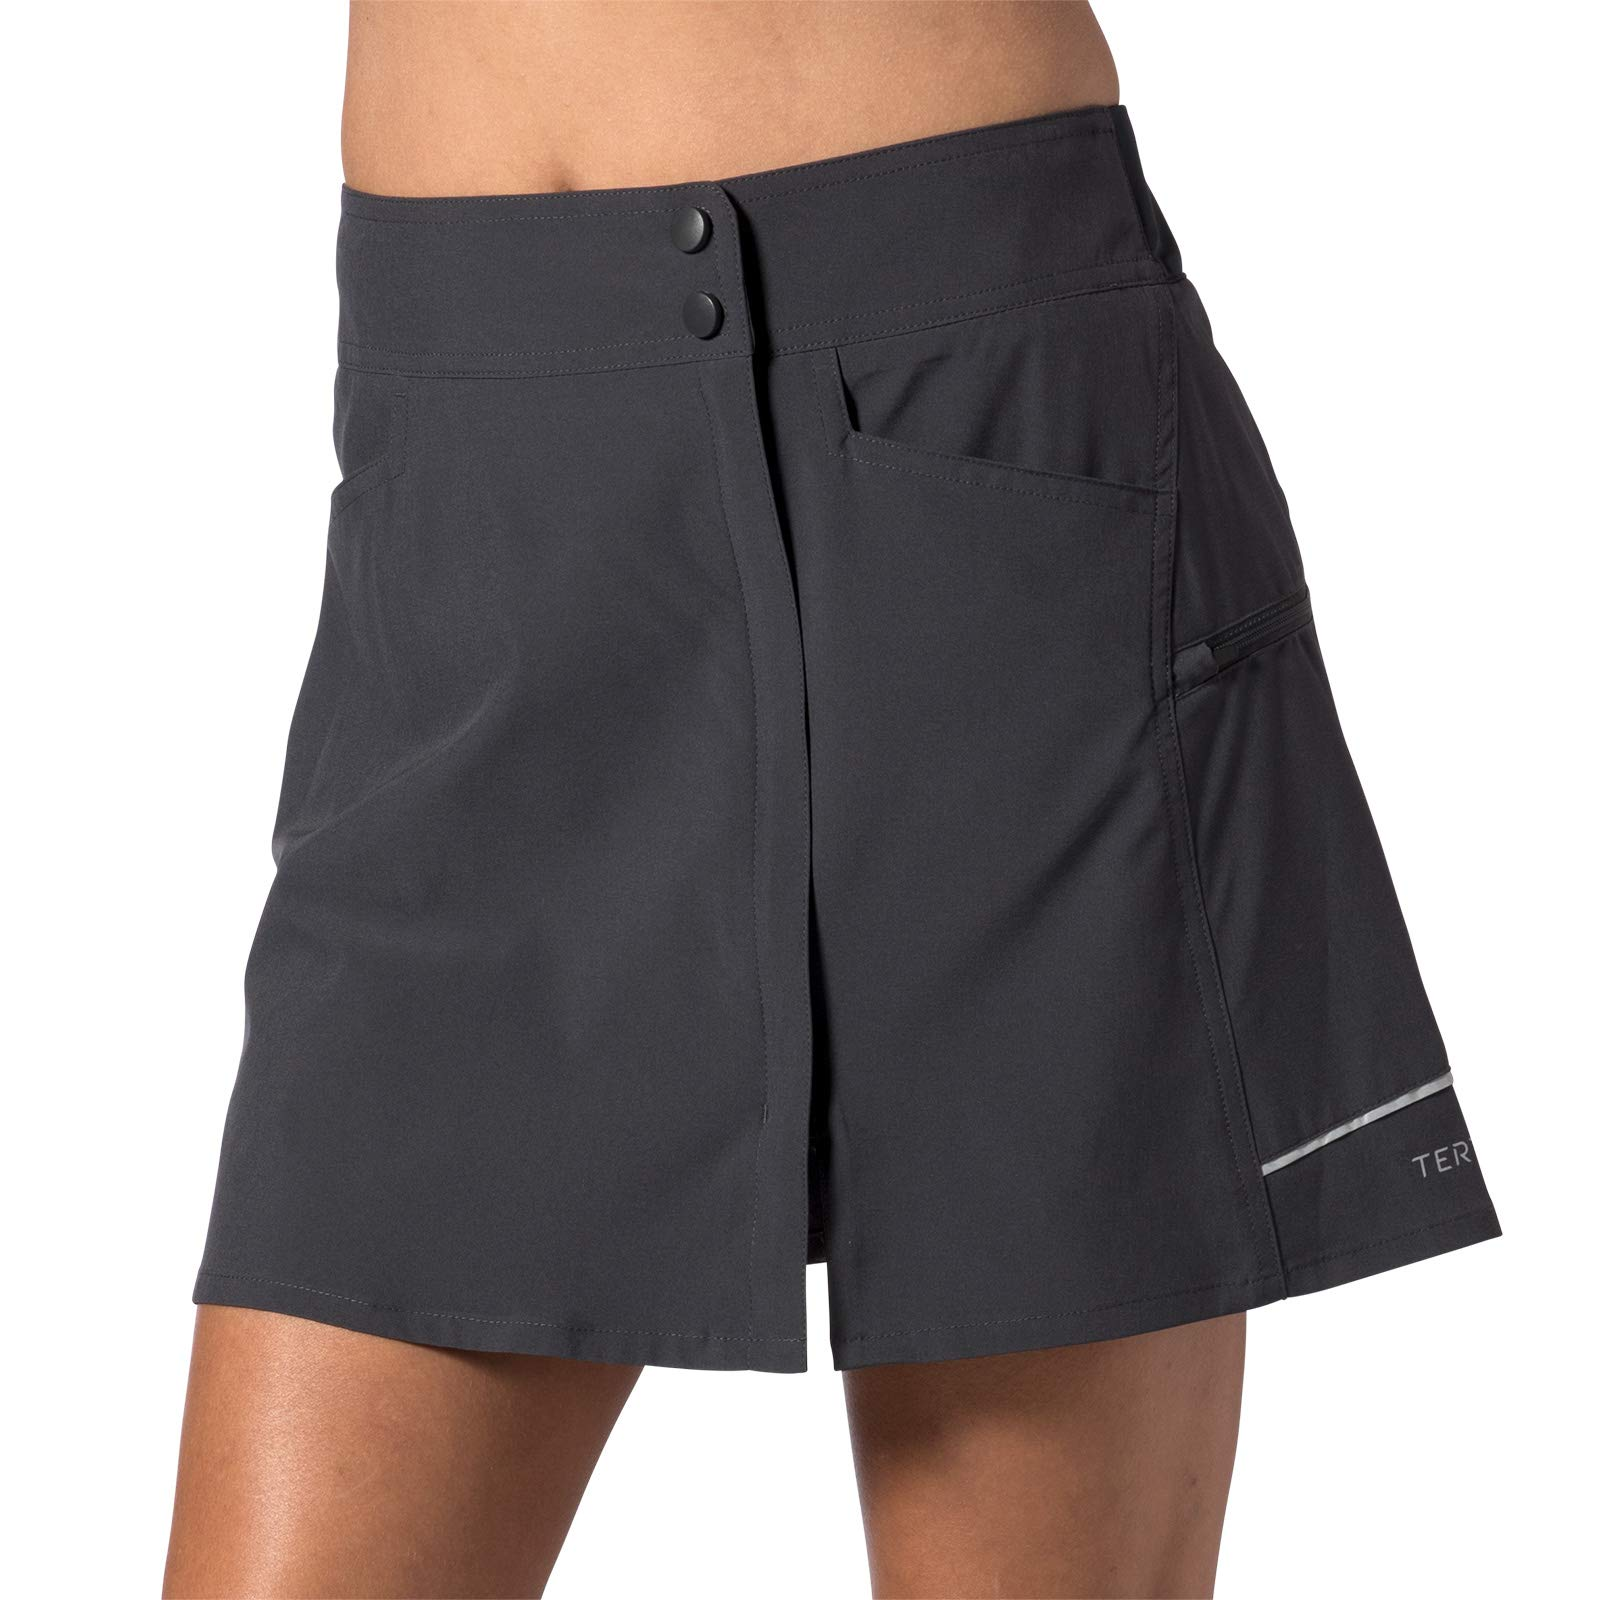 Terry Women's Metro Skort Lite Cycling Athletic Sport Skirt with Padded Chamois Liner Shorts - Ebony - Small by Terry